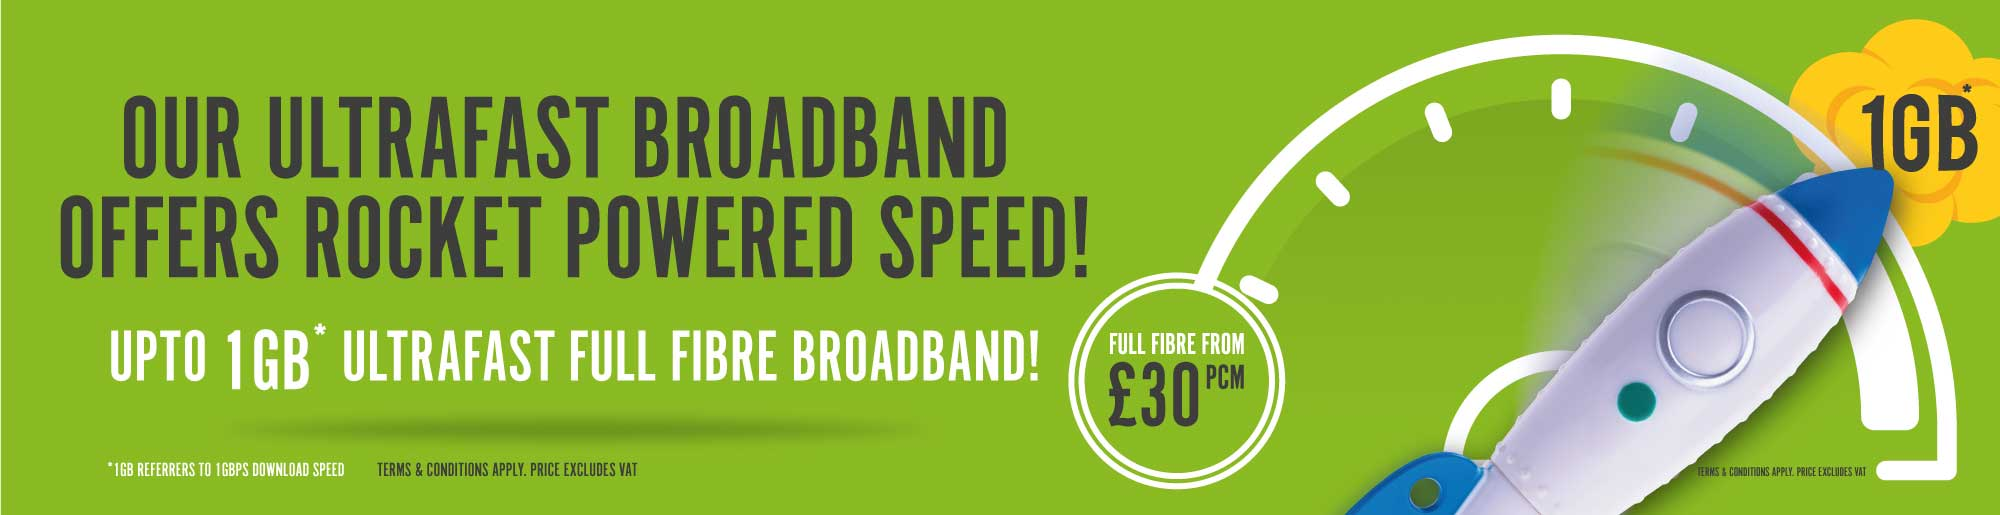 Full Fibre Broadband from £30 per month